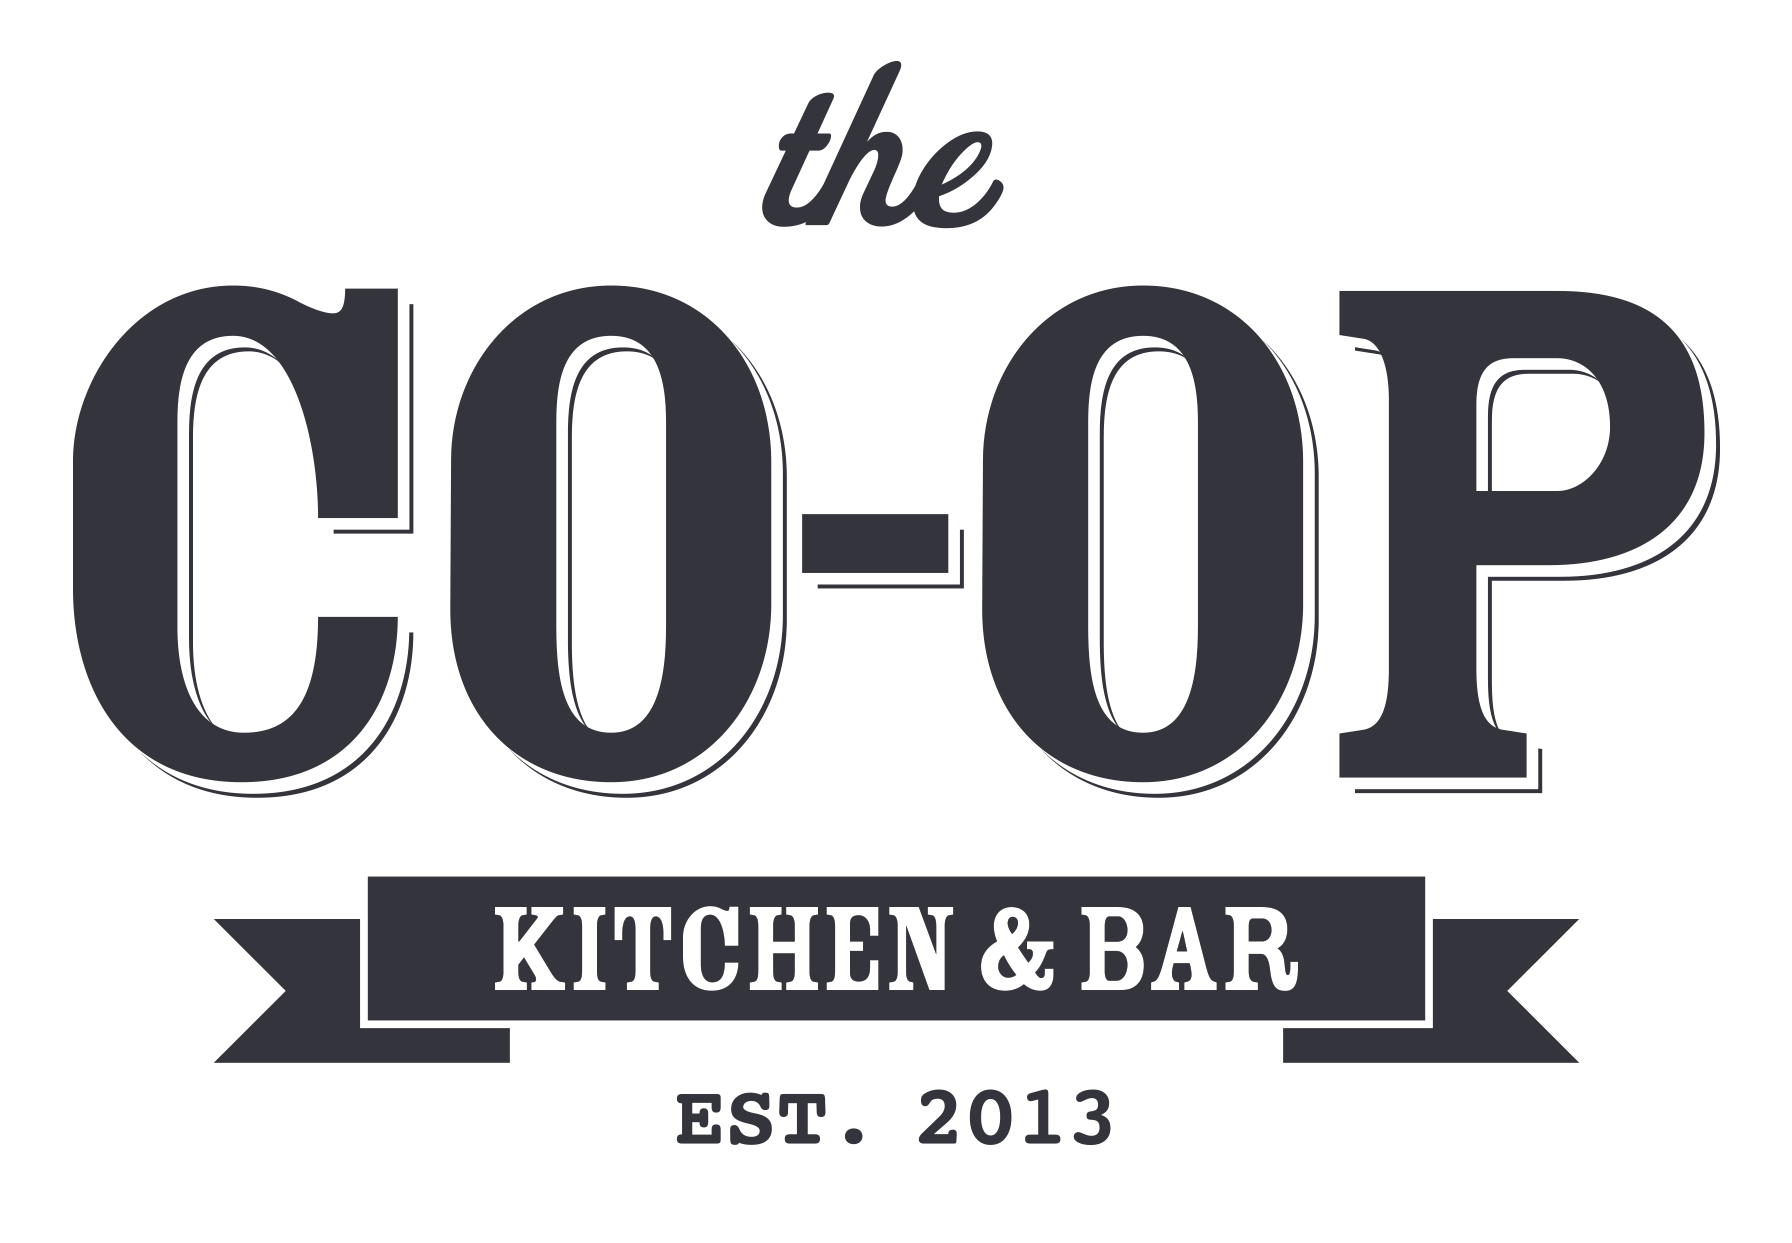 The Co-Op Kitchen